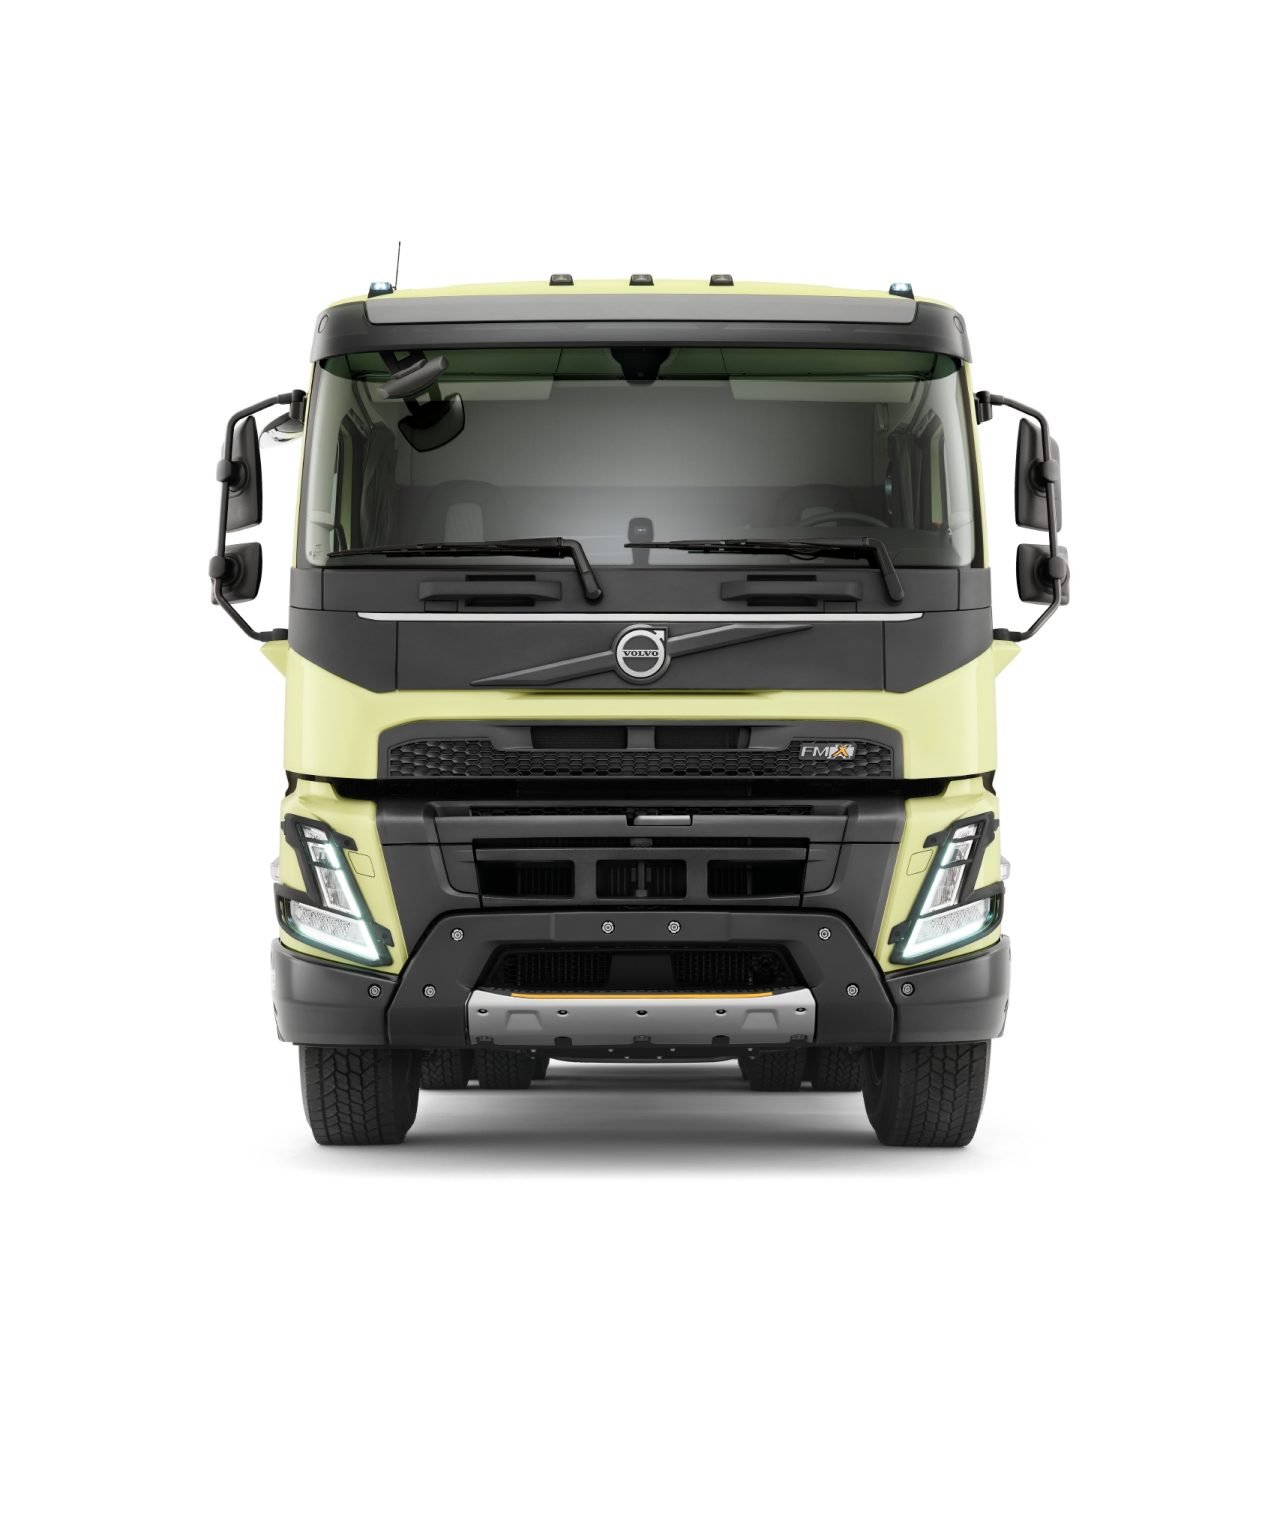 Volvo trucks buying FMX